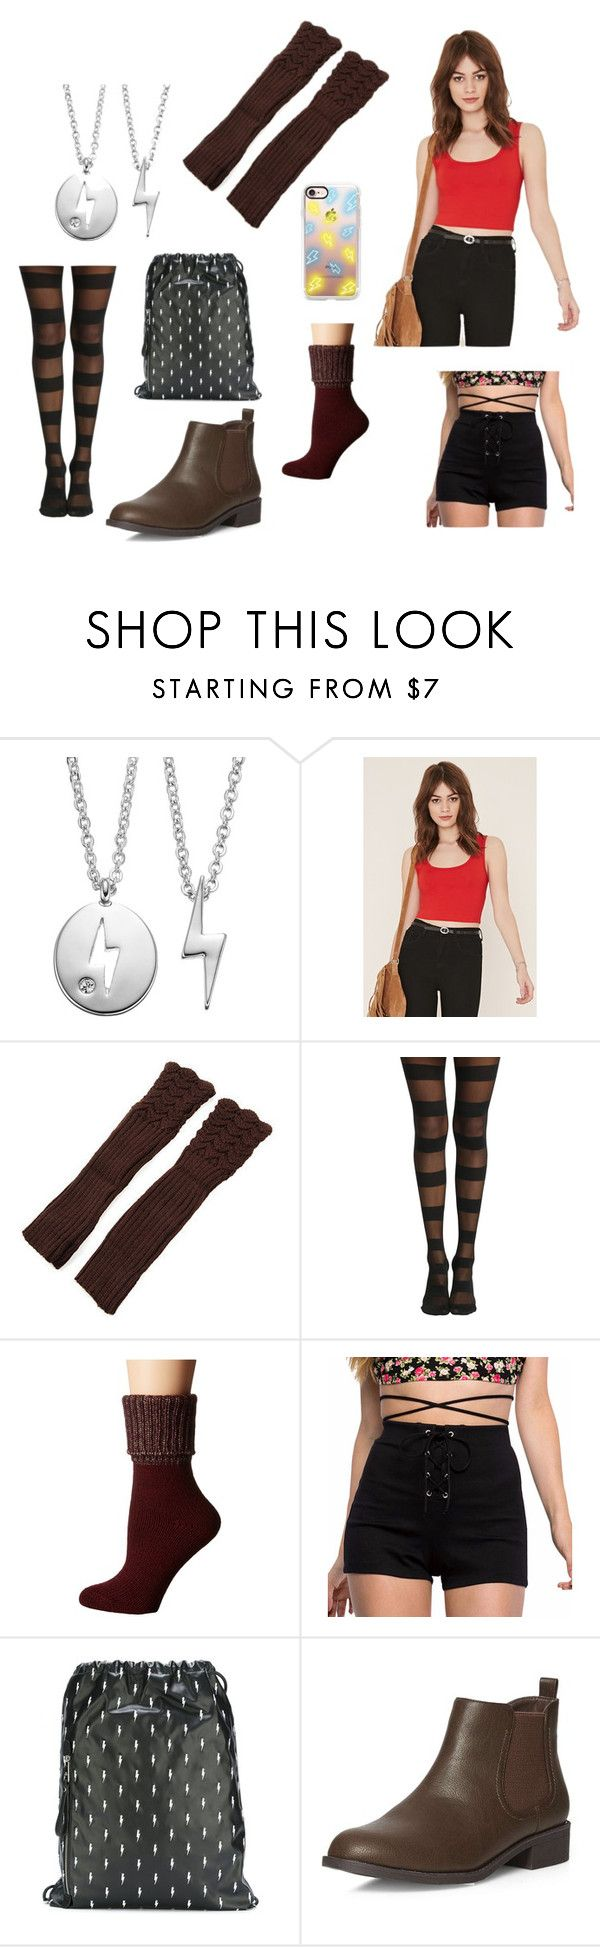 """""""Bolt - Penny"""" by peacereaper ❤ liked on Polyvore featuring Side by Side, Forever 21, Falke, Neil Barrett, Dorothy Perkins and Casetify"""